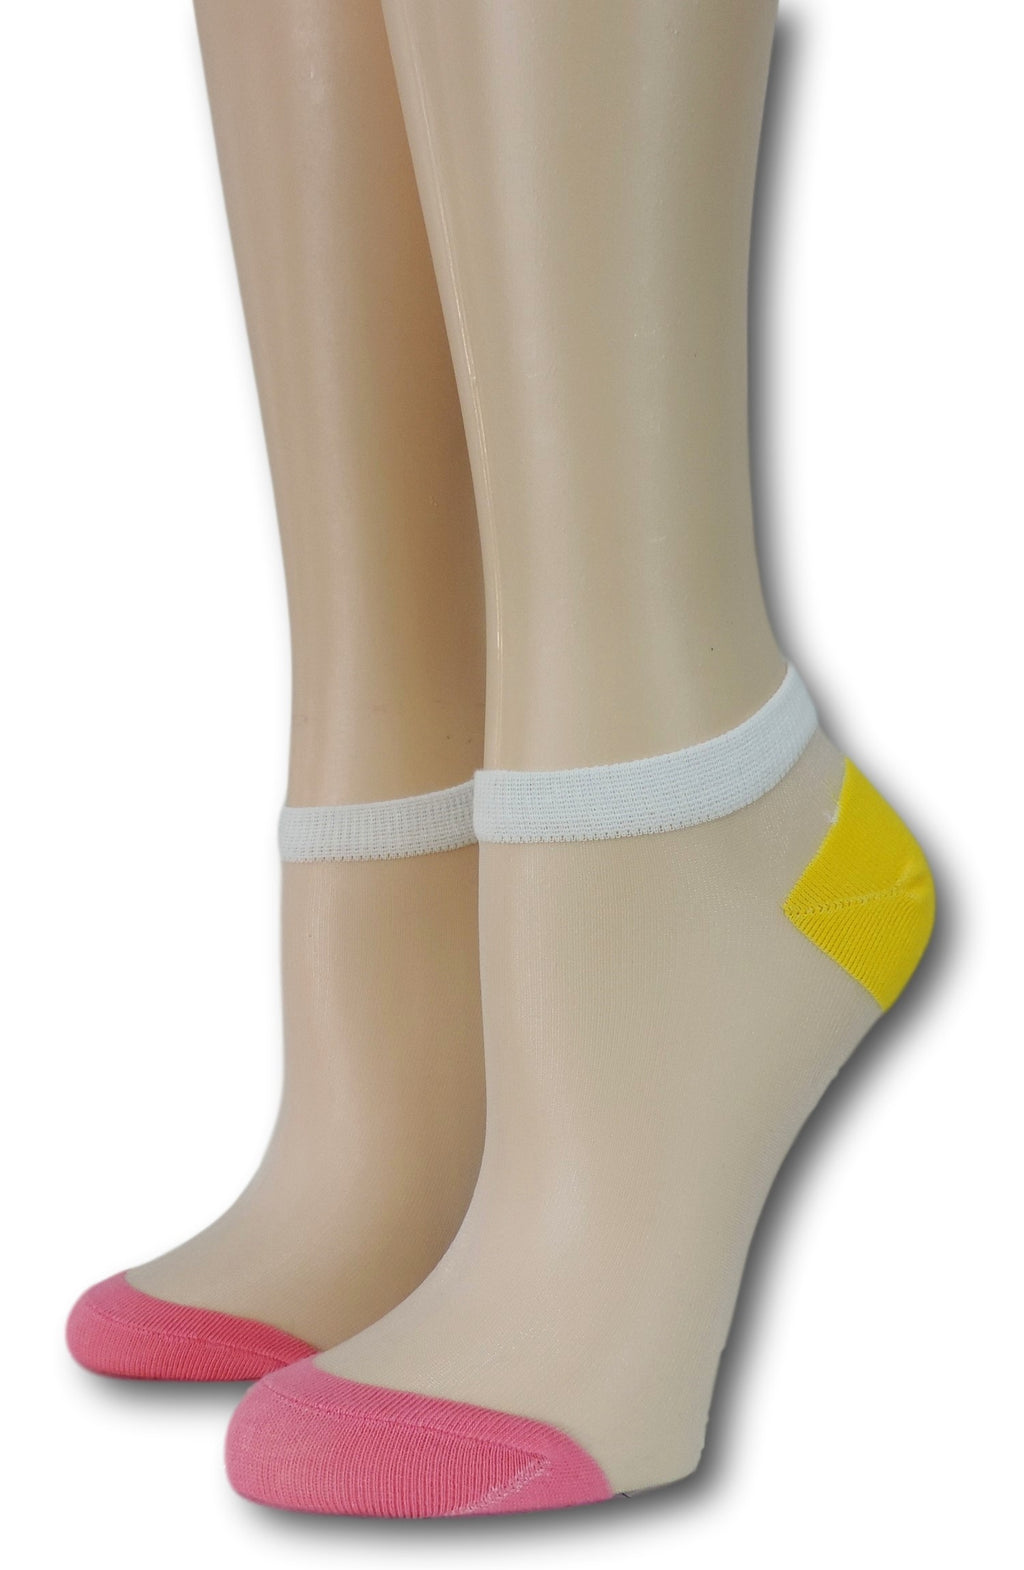 Pink-Yellow Ankle Sheer Socks